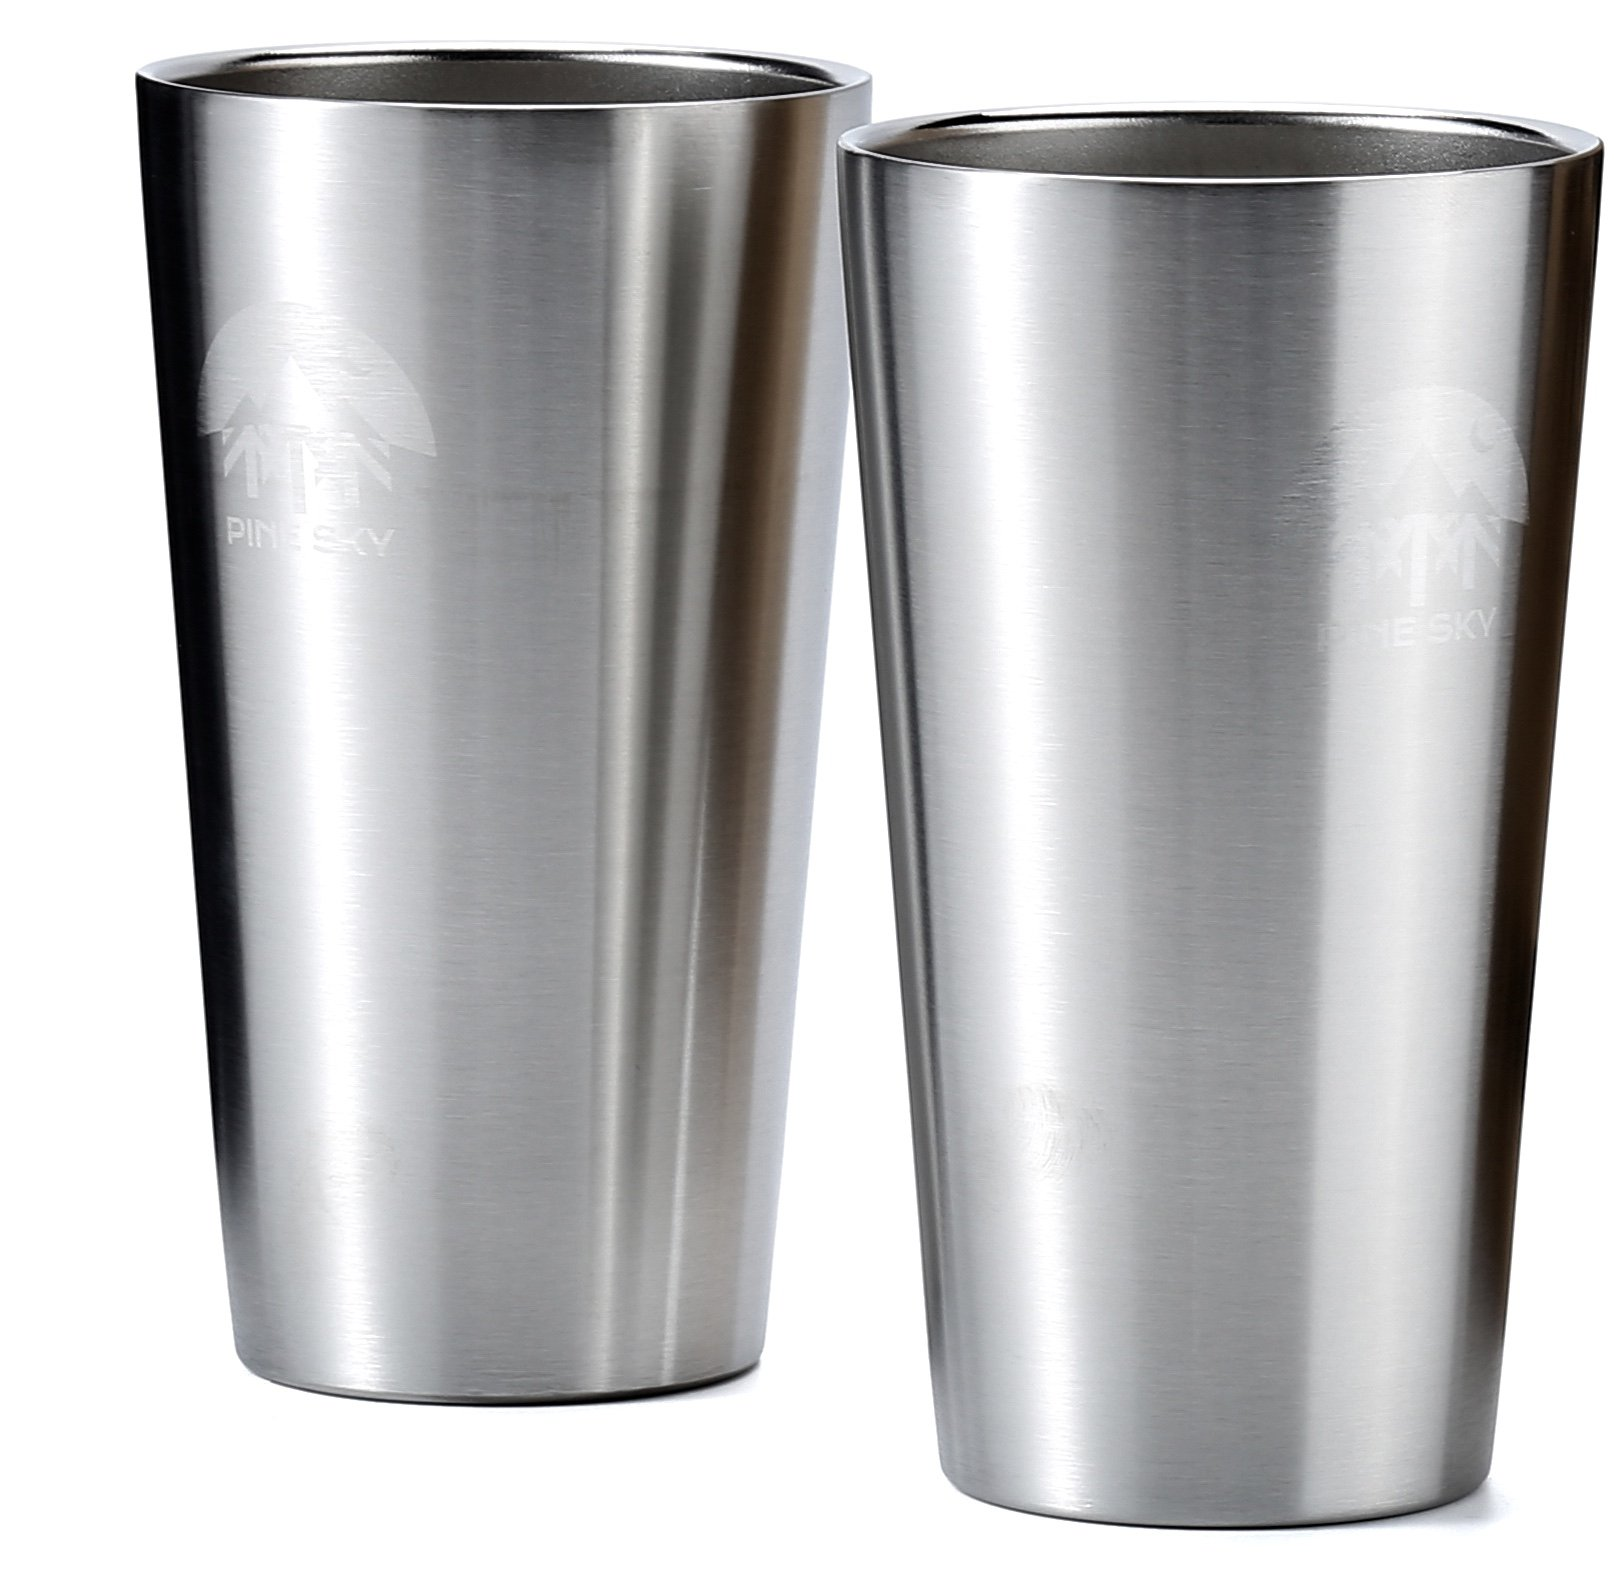 Stainless Steel True Pint Cup by Pine Sky, 16 oz Vacuum Insulated, Stackable Tumbler - Set of 2